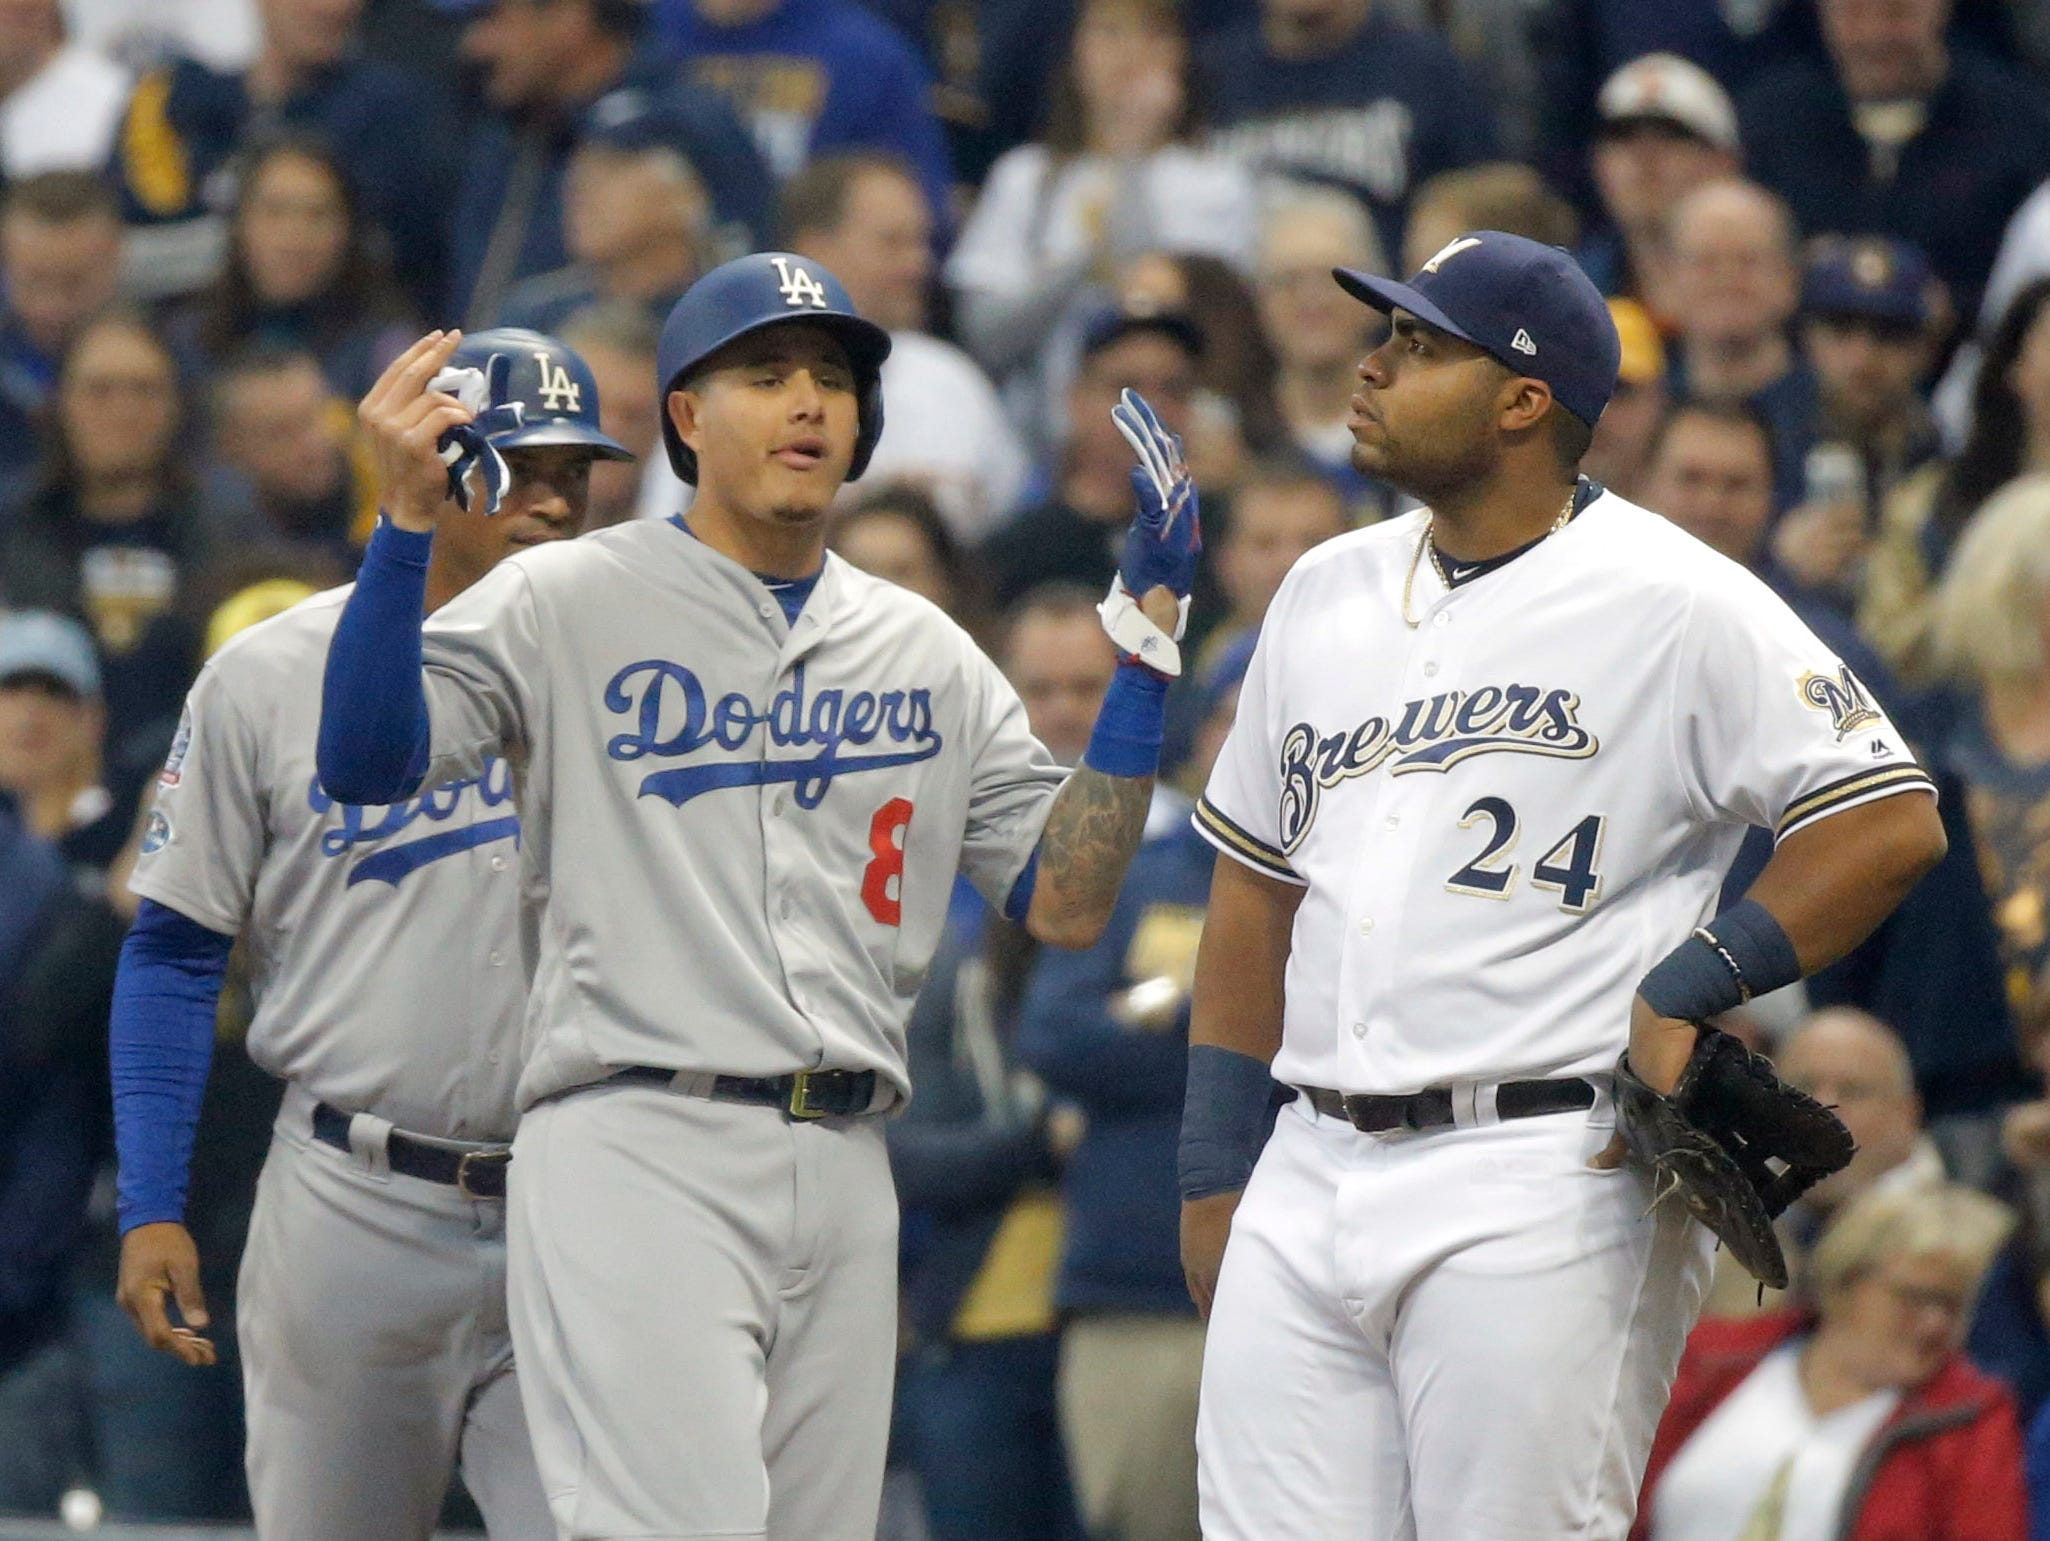 NLCS Game 7: Manny Machado reacts after a bunt single in the second inning.